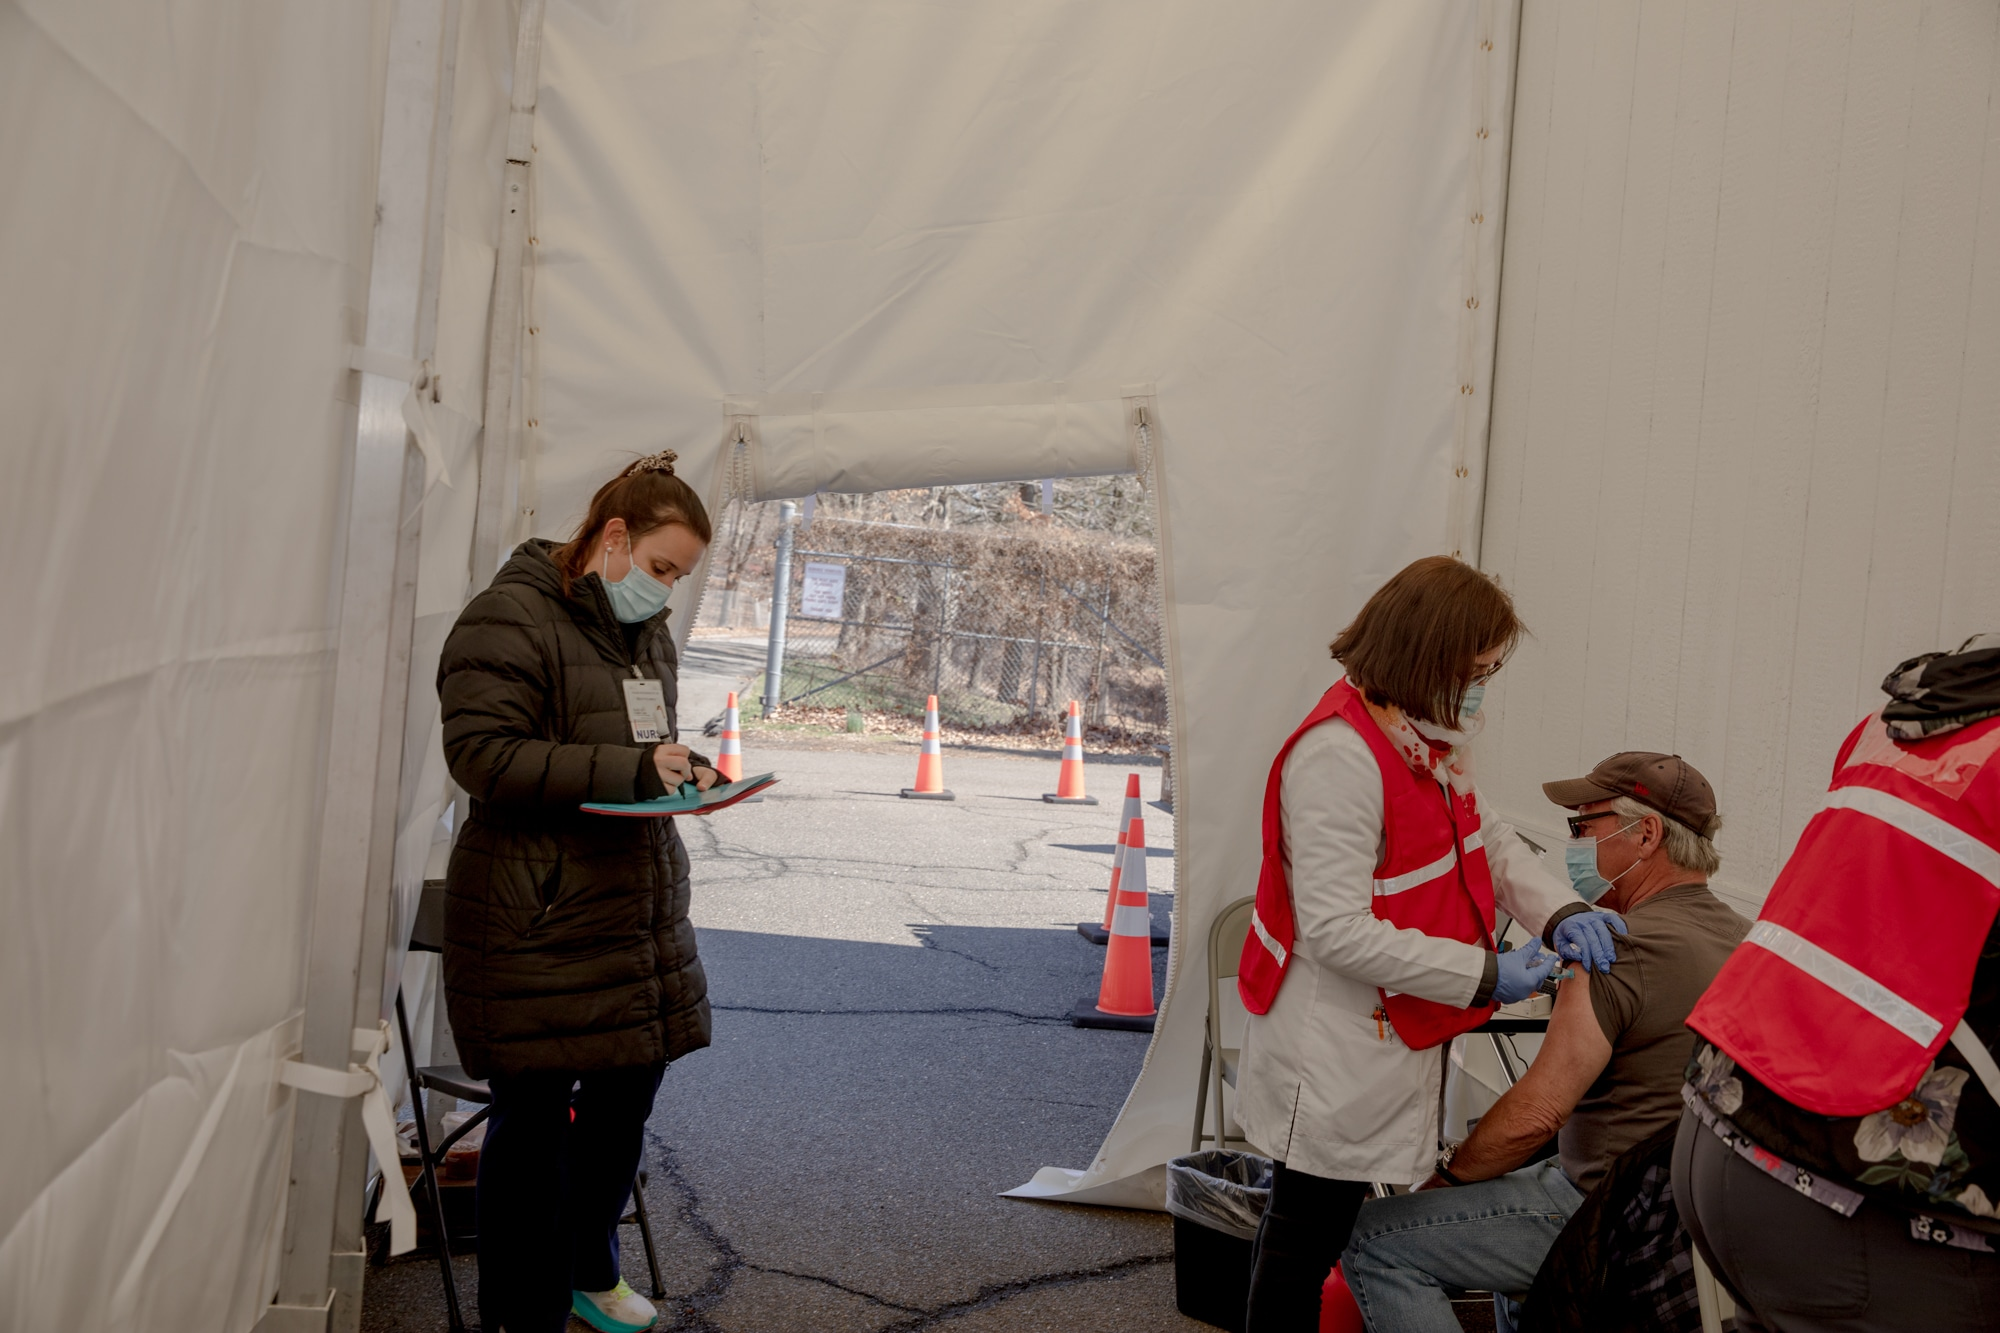 This tiny CT town has only one place to get the COVID vaccine. So the FEMA trailer is on the way to help.